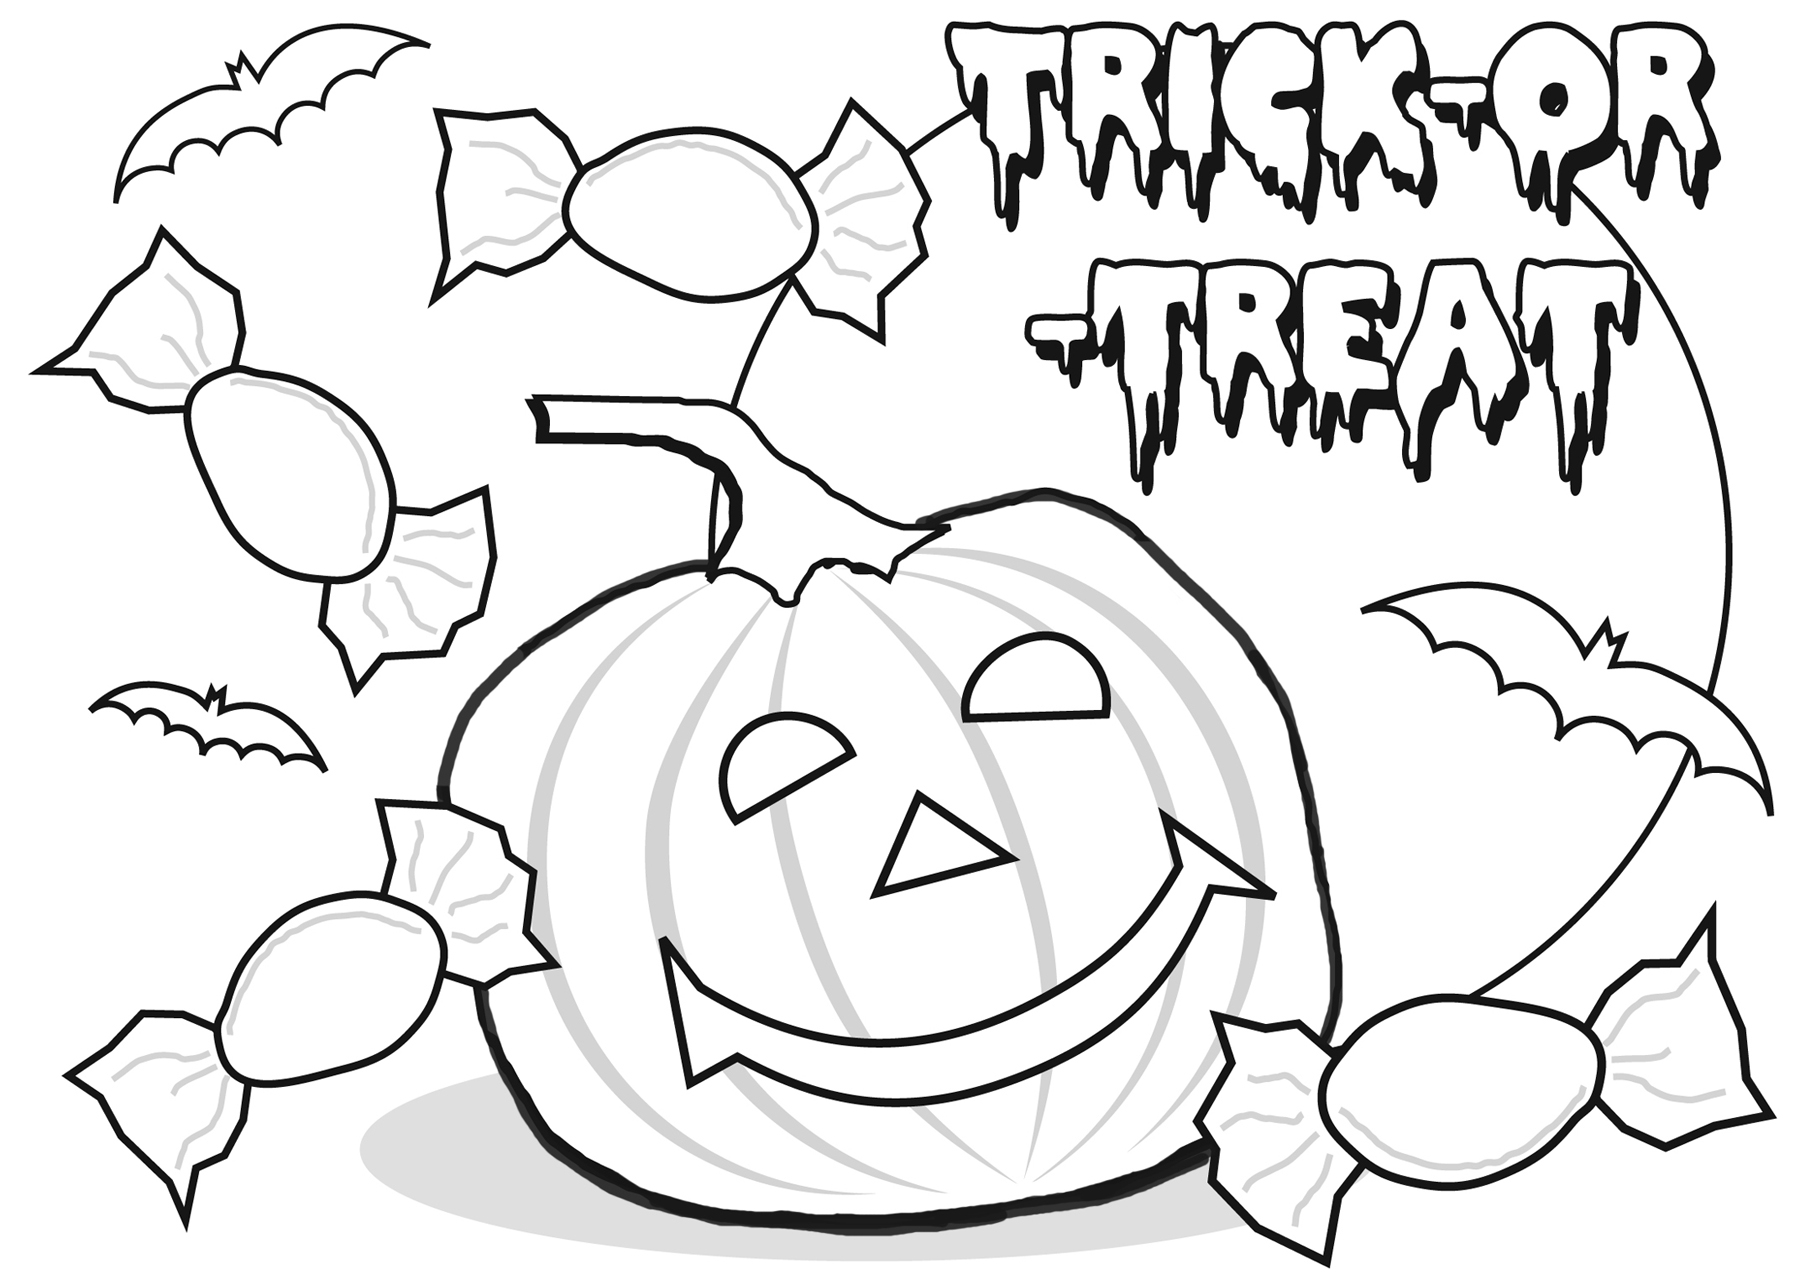 halloween pictures of pumpkins to color pumpkins halloween coloring pages printable for kids pictures color of pumpkins halloween to